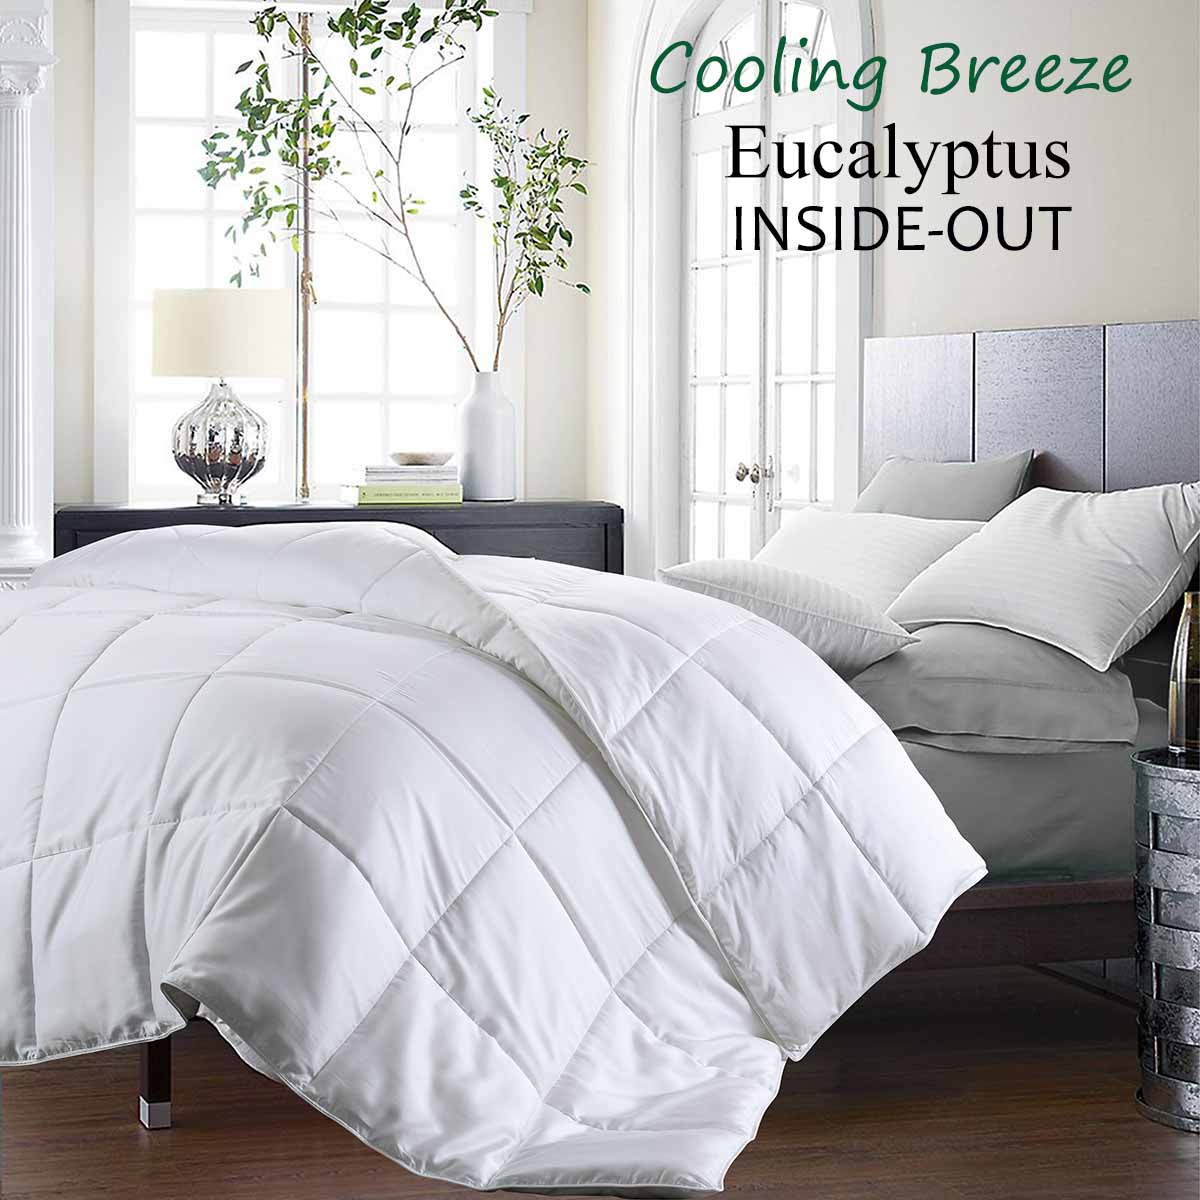 Cooling Breeze Eucalyptus Inside Out Comforter